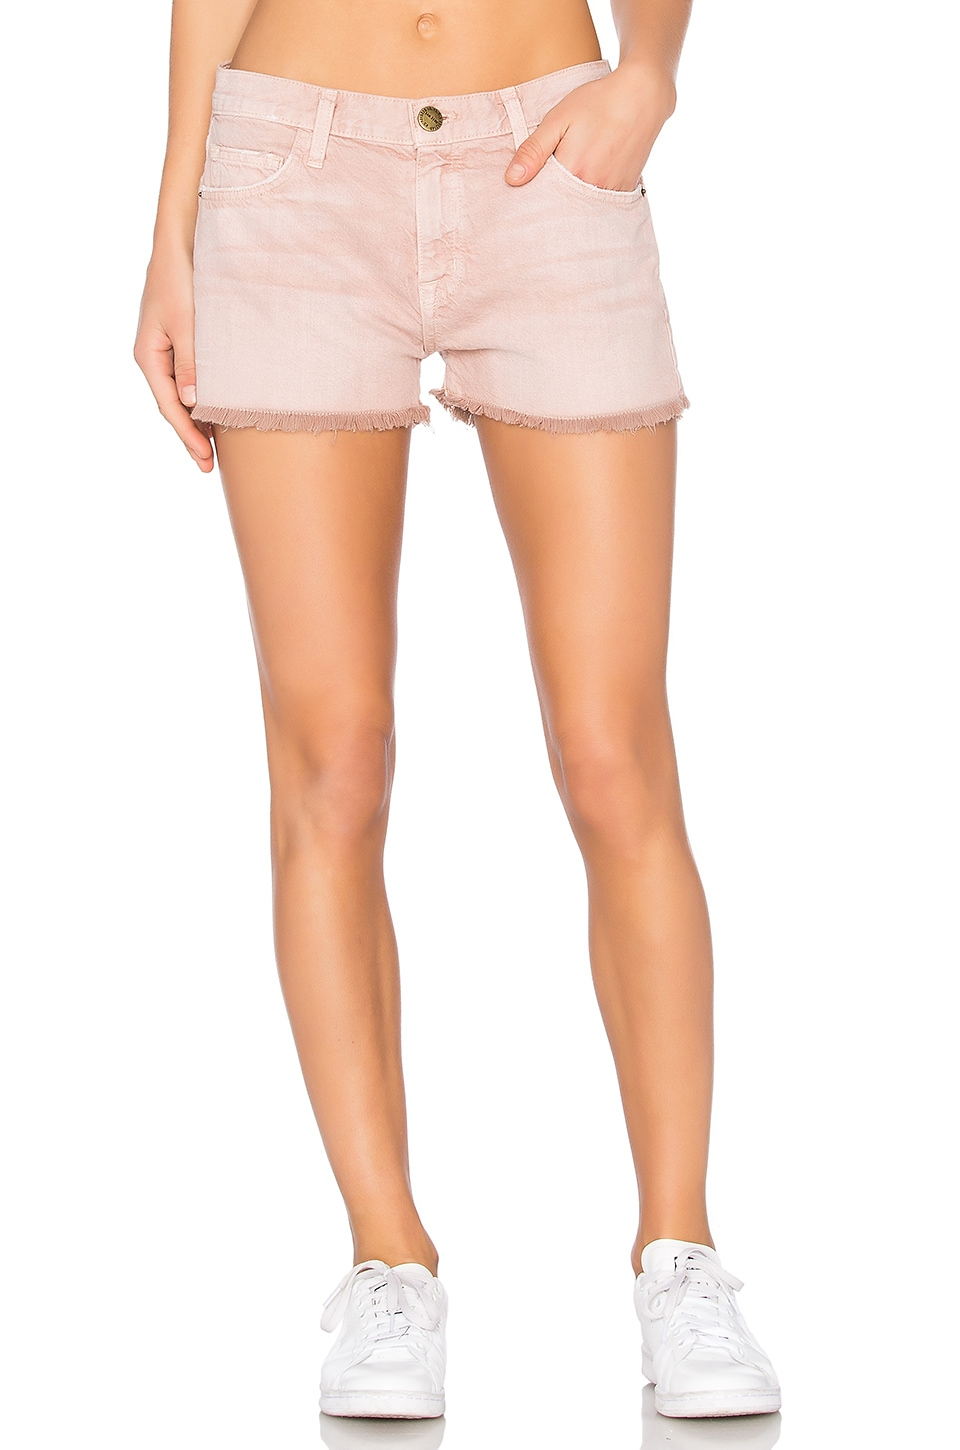 Current/Elliott The Boyfriend Short in Rose Dust